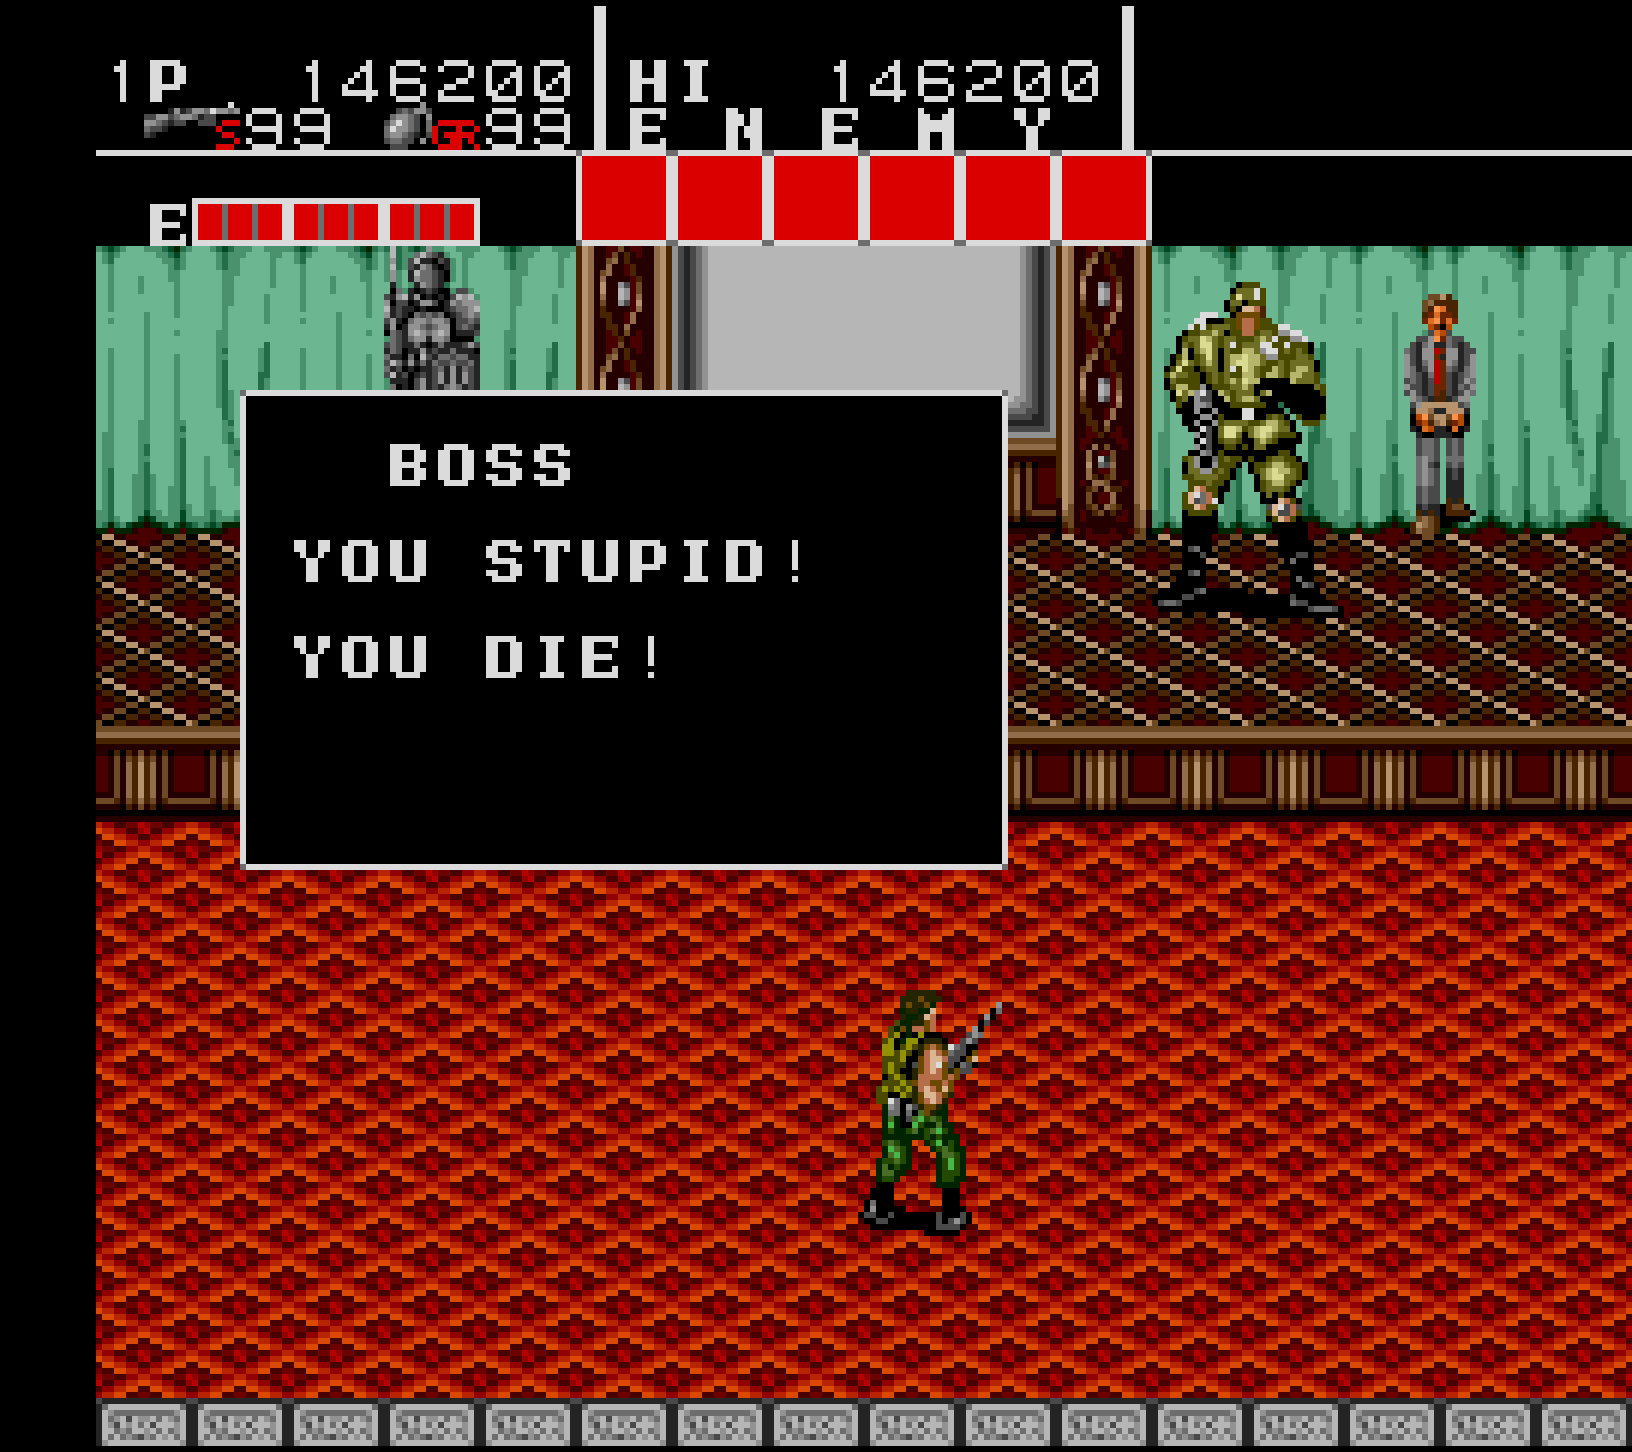 You stupid! You die!